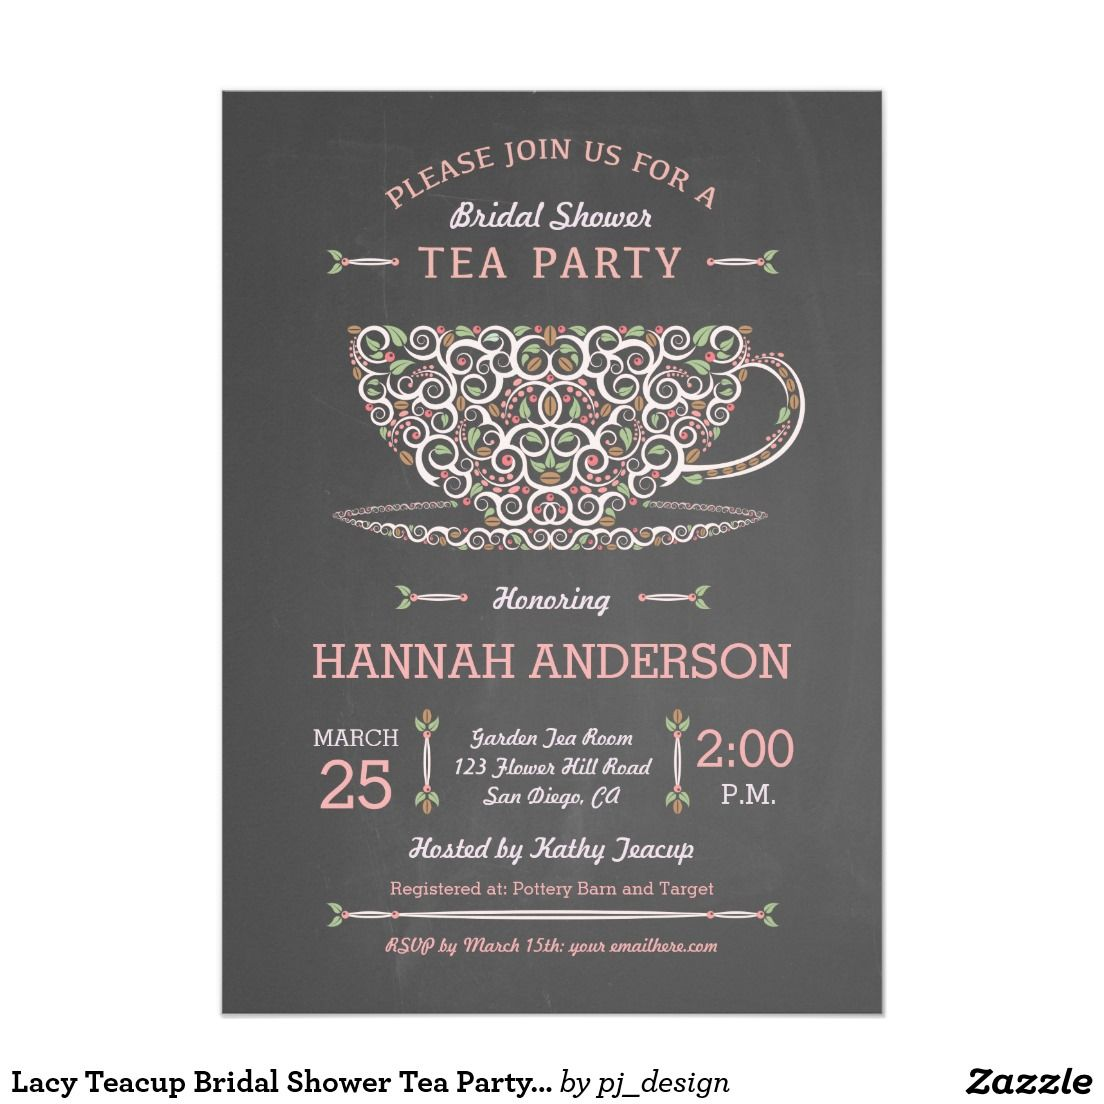 Lacy Teacup Bridal Shower Tea Party Invitation I